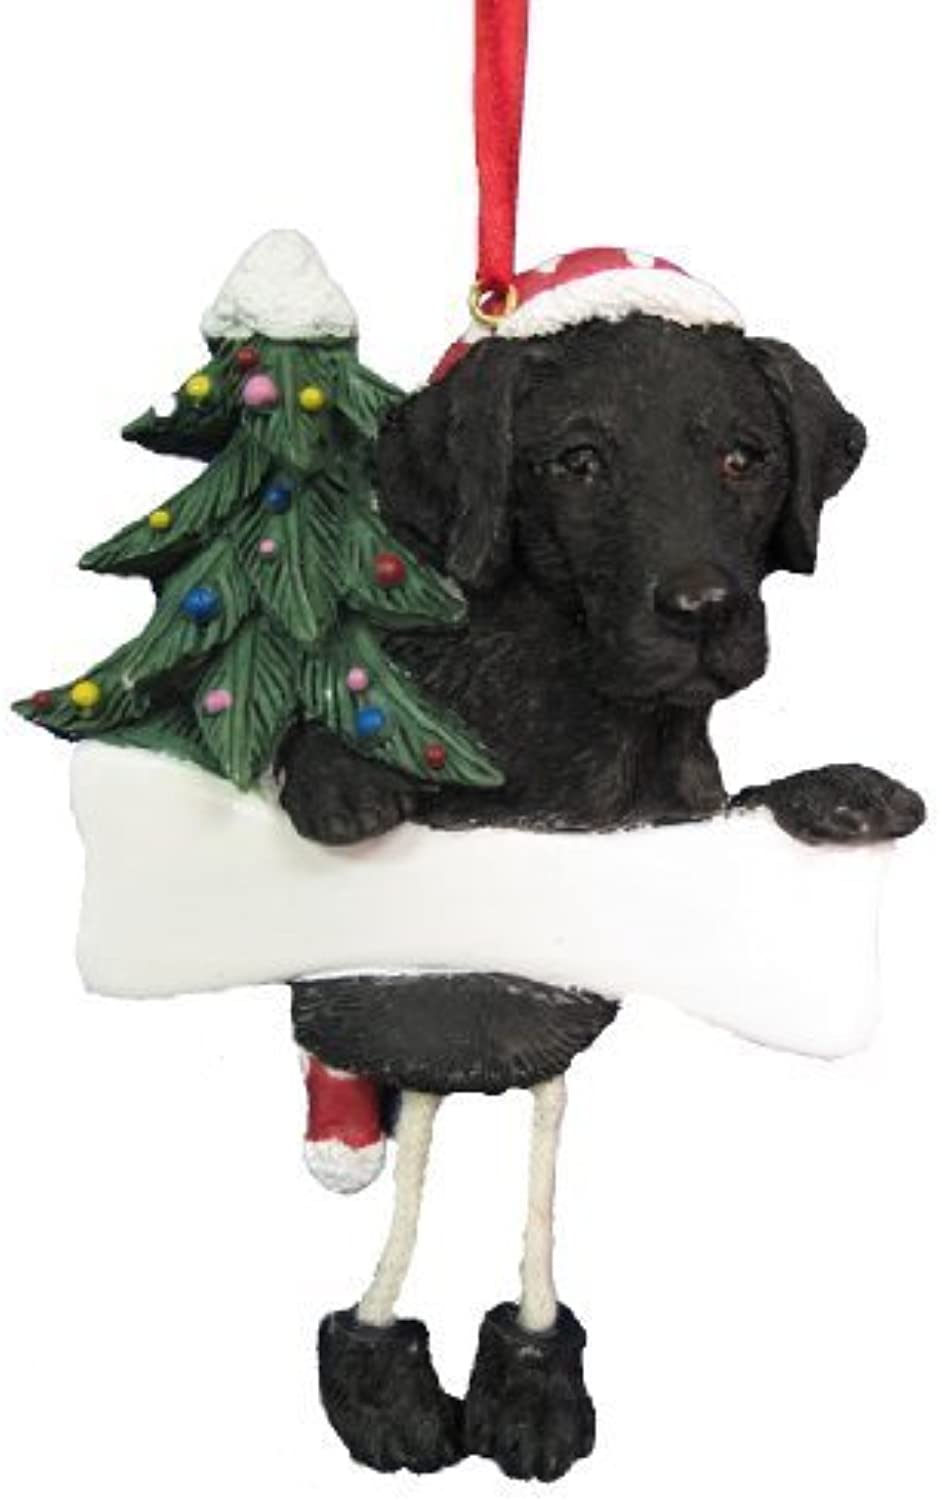 Black Labrador Ornament with Unique  Dangling Legs  Hand Painted and Easily Personalized Christmas Ornament by E&S Imports, Inc